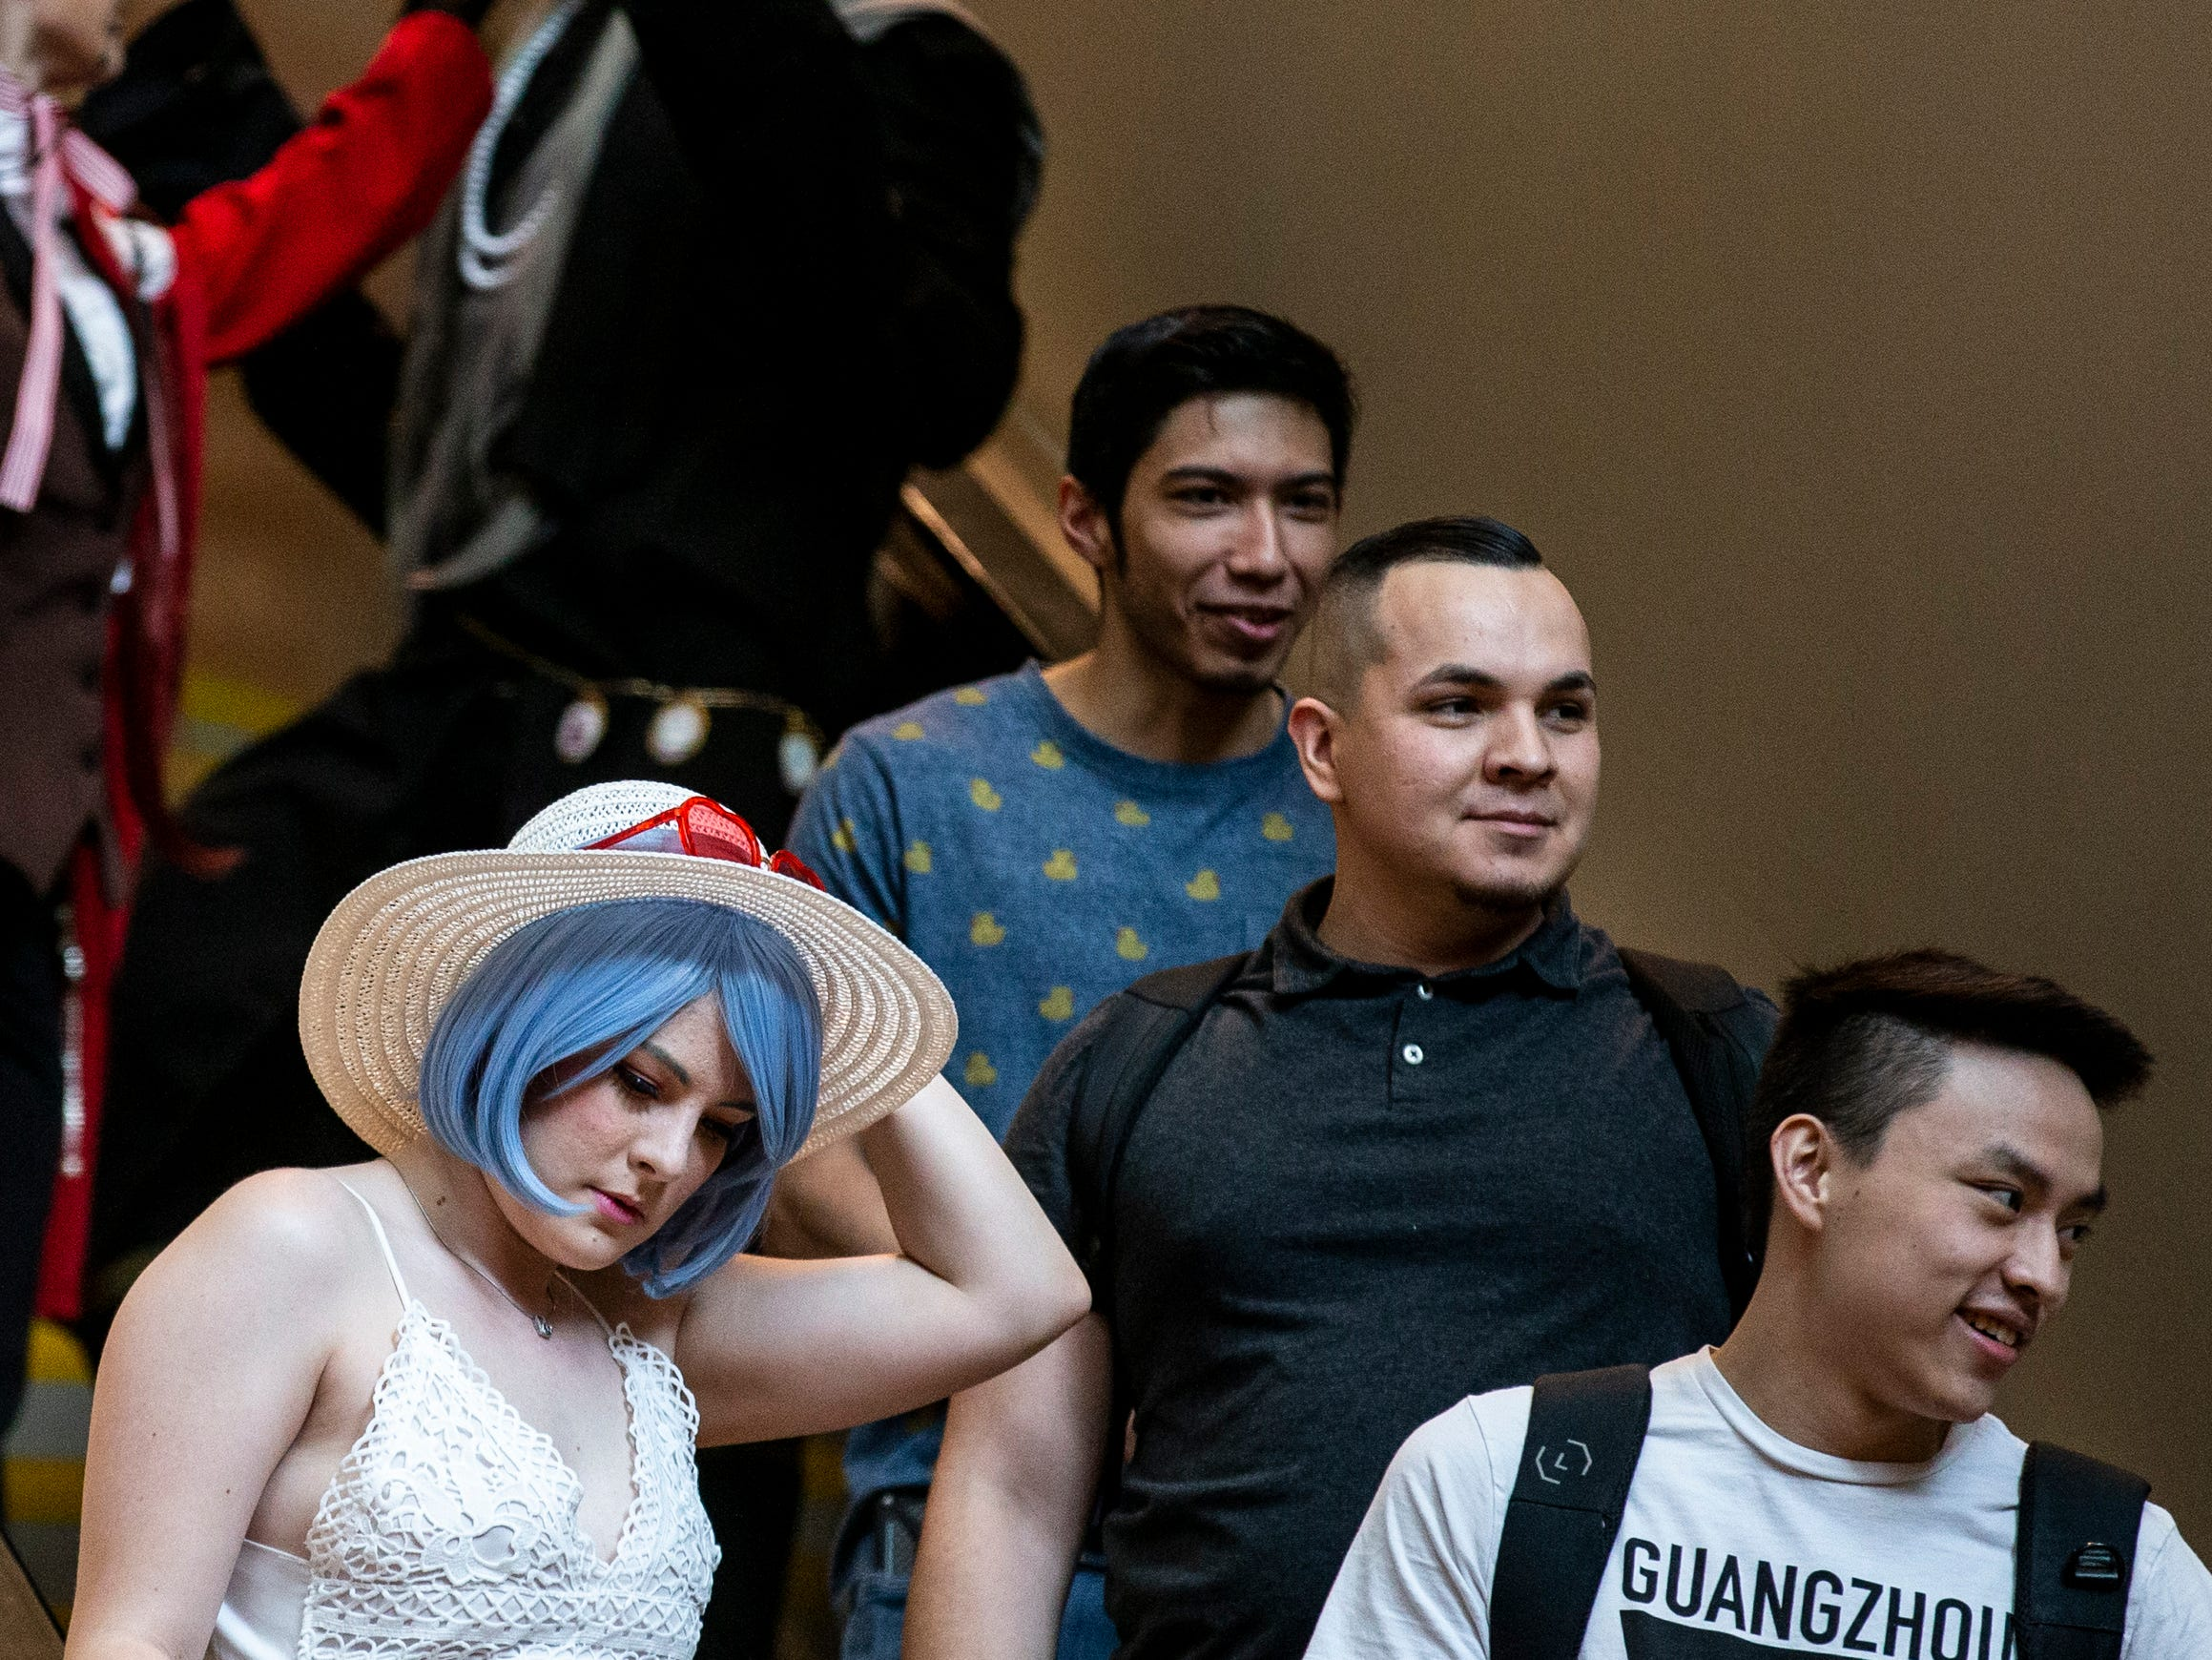 Attendees ride down an escalator during Day 1 of Phoenix Fan Fusion on Thursday, May 23, 2019, at the Phoenix Convention Center in Phoenix.